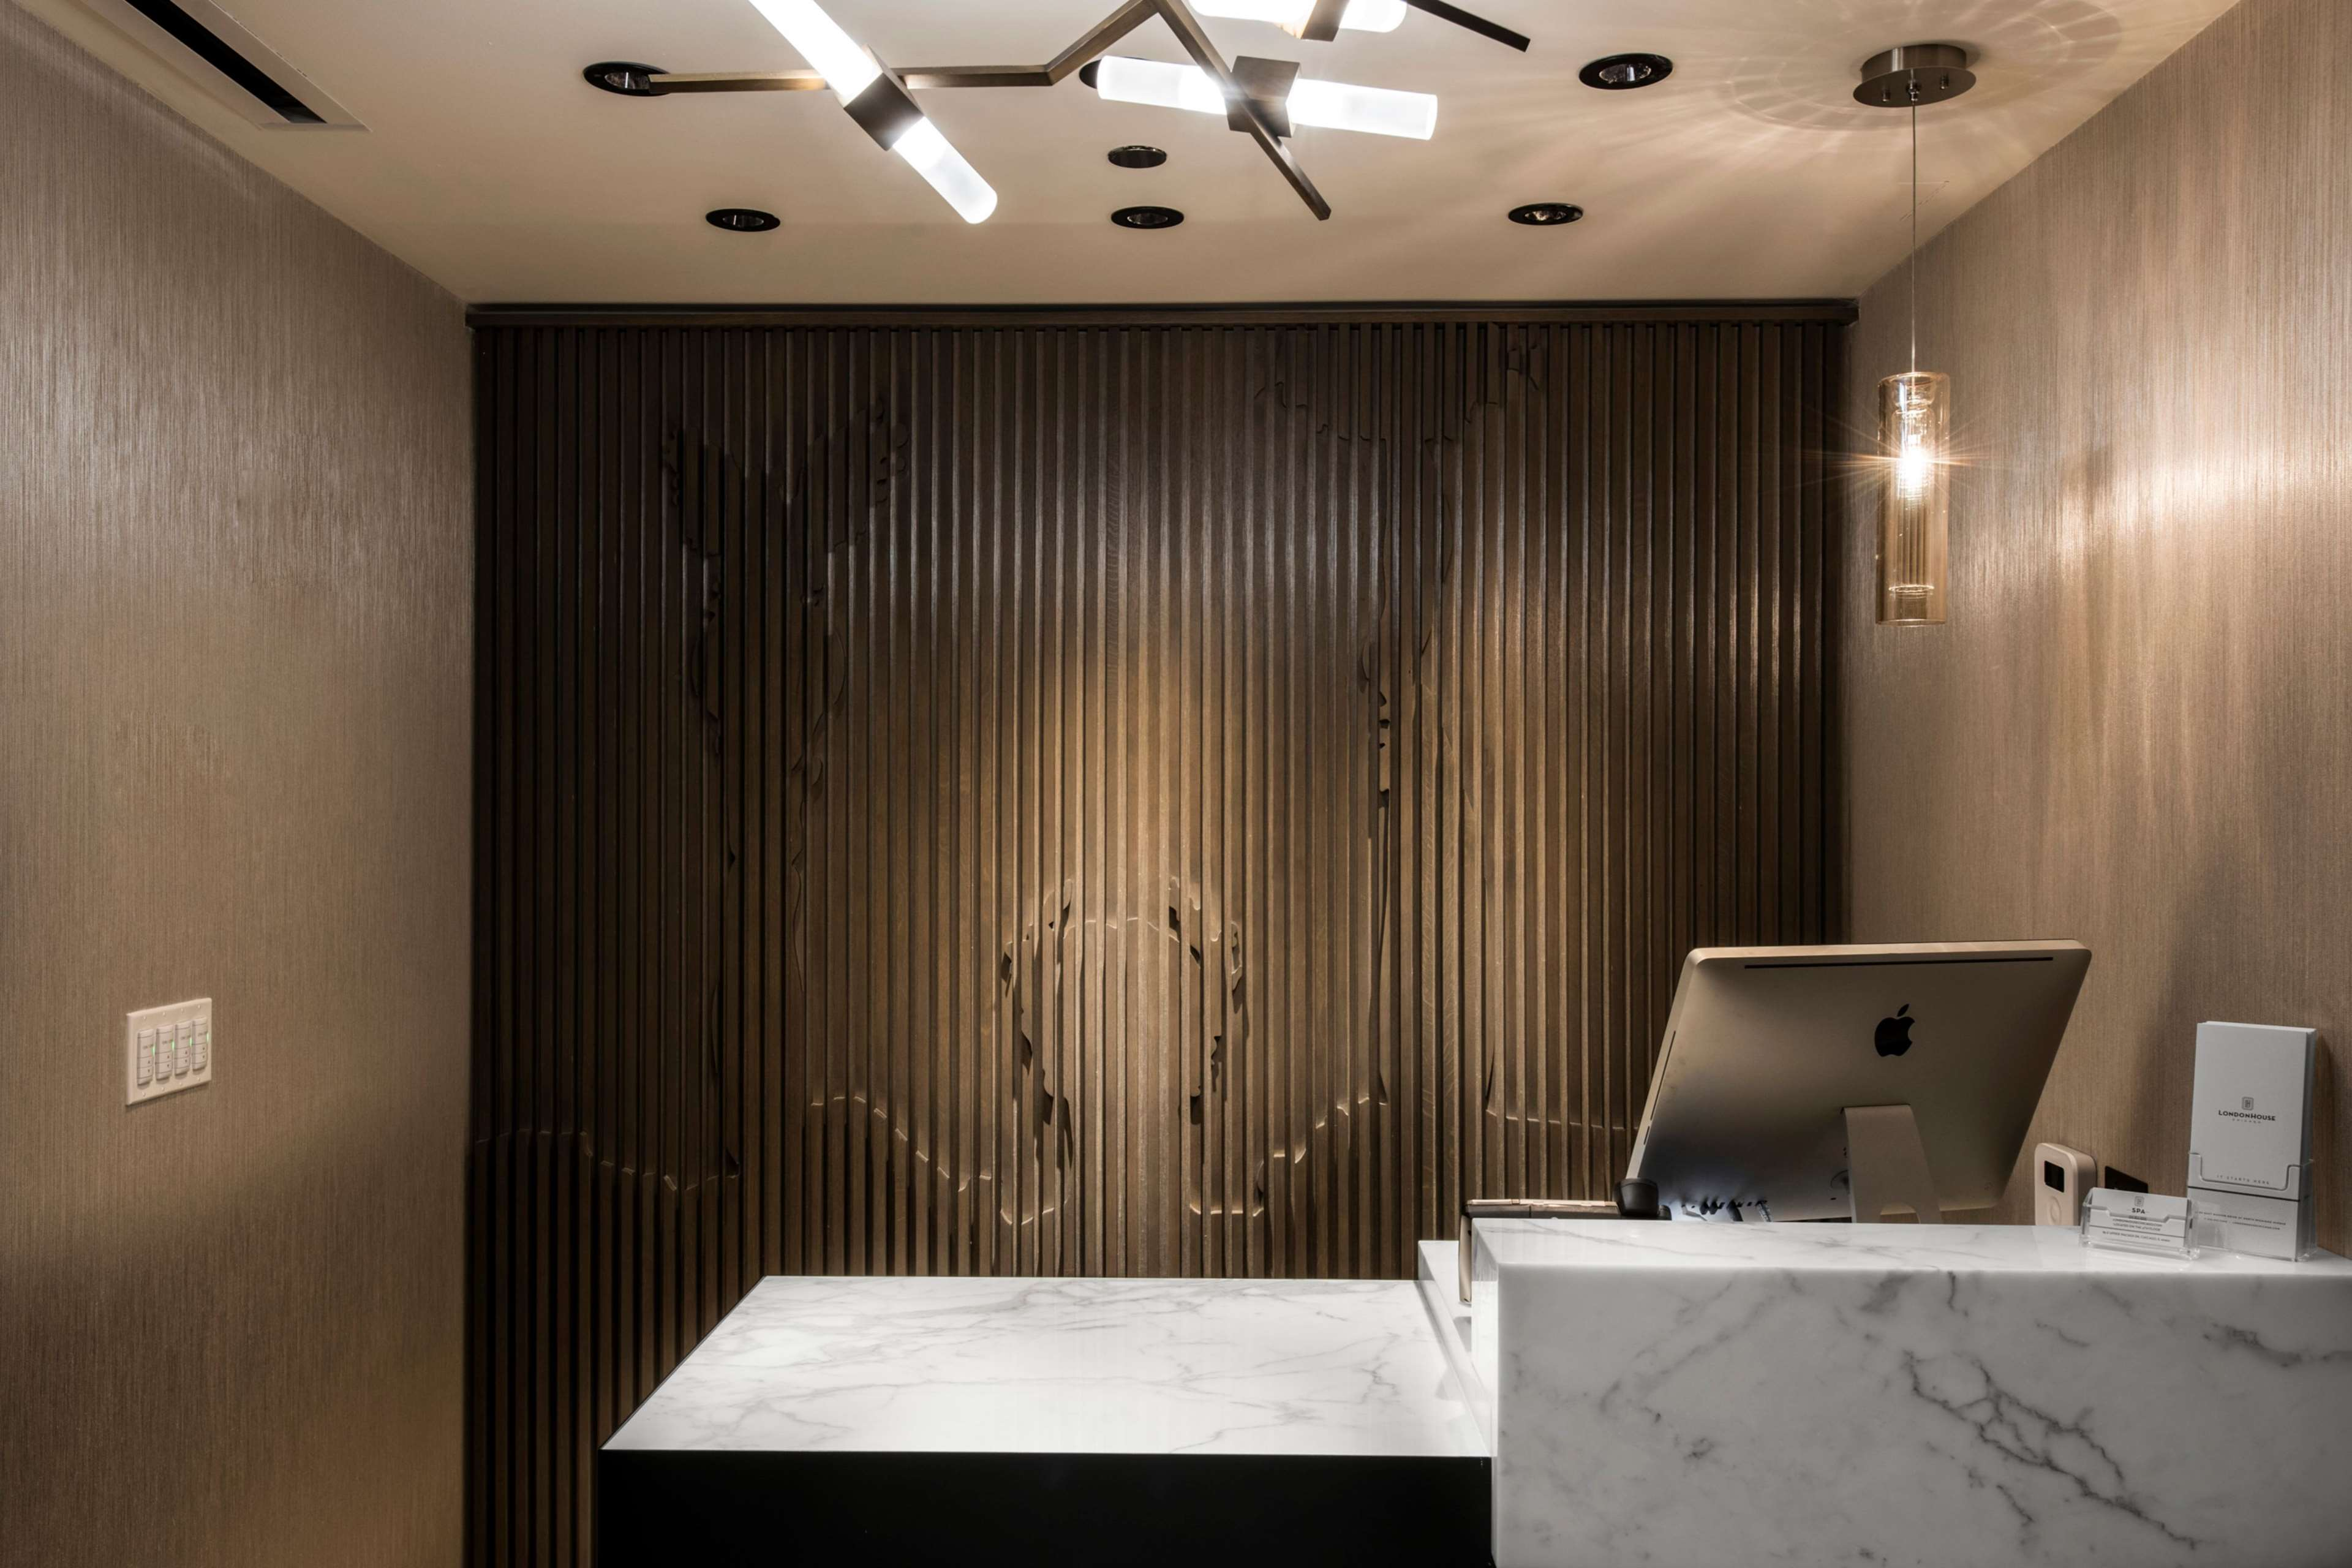 LondonHouse Chicago, Curio Collection by Hilton image 37